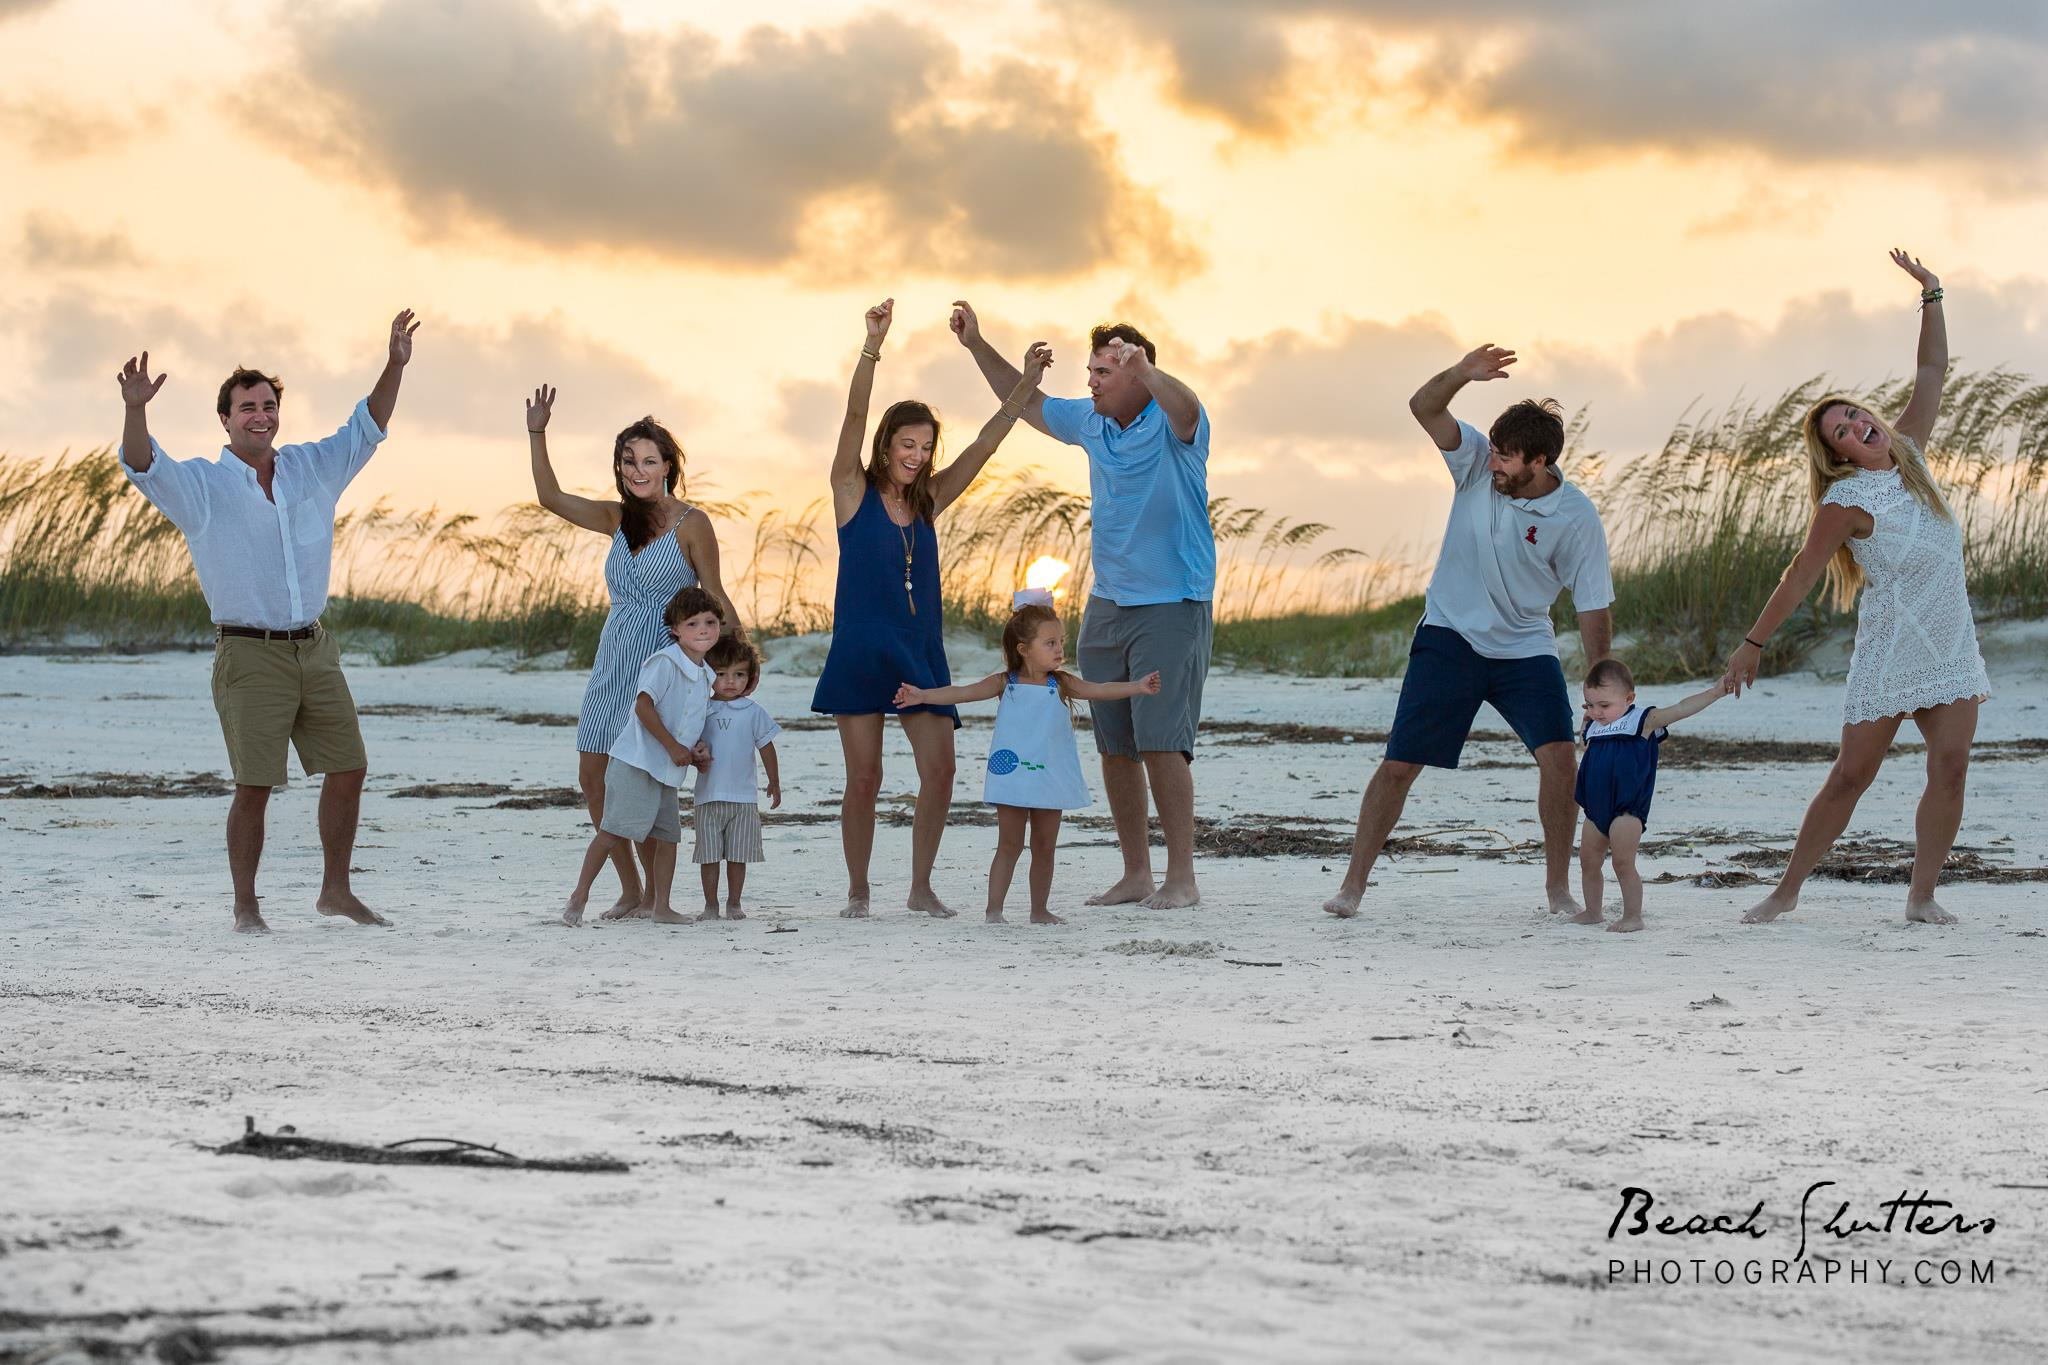 sunset photos in Orange Beach taken by Beach Shutters Photography